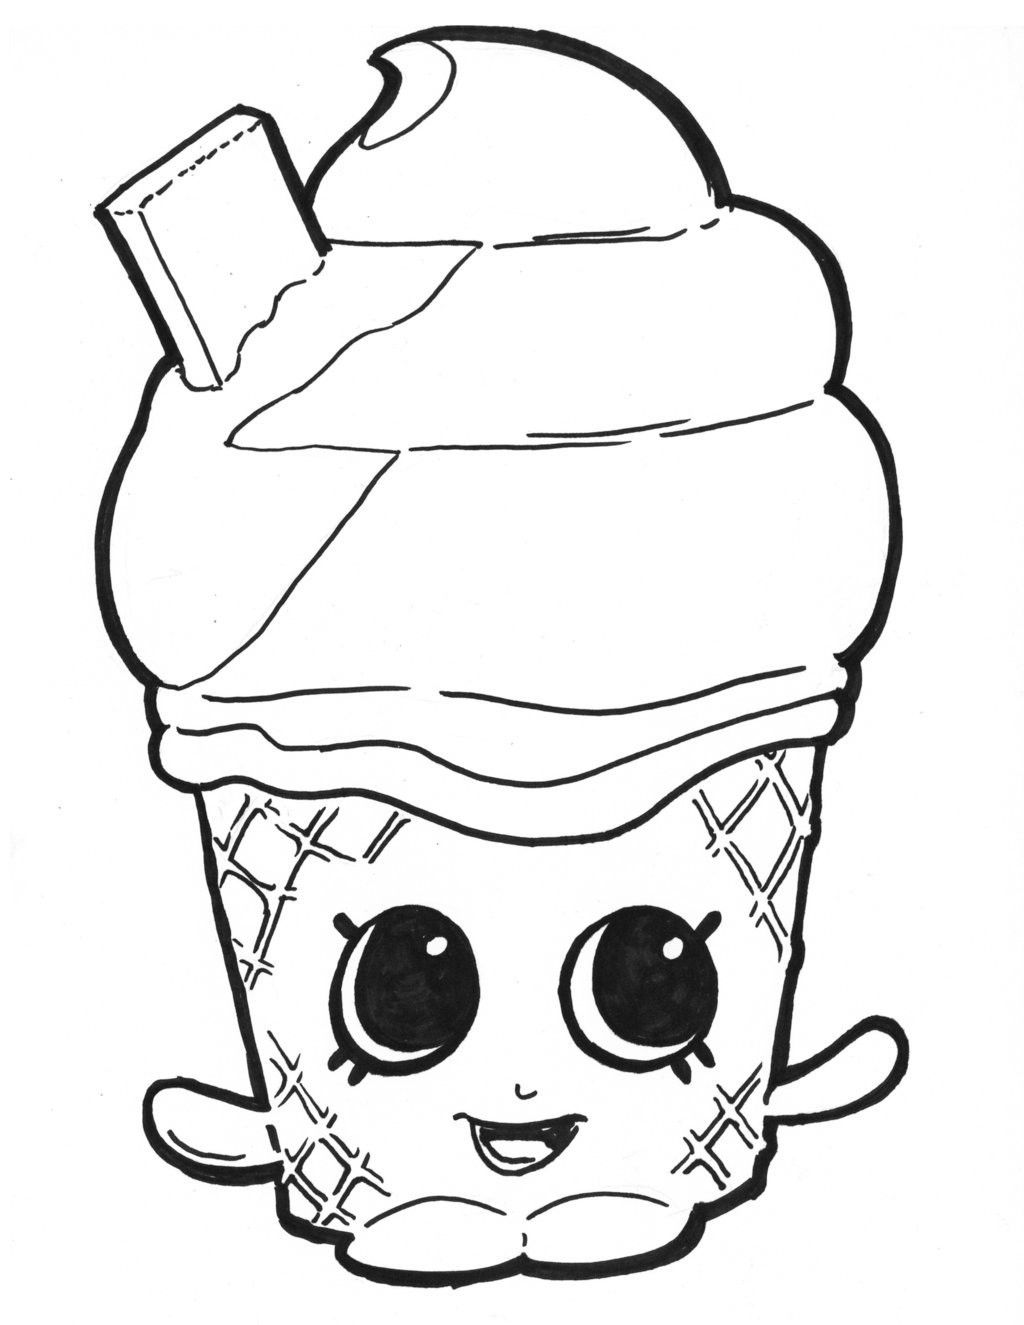 shopkins-coloring-page-0023-q1